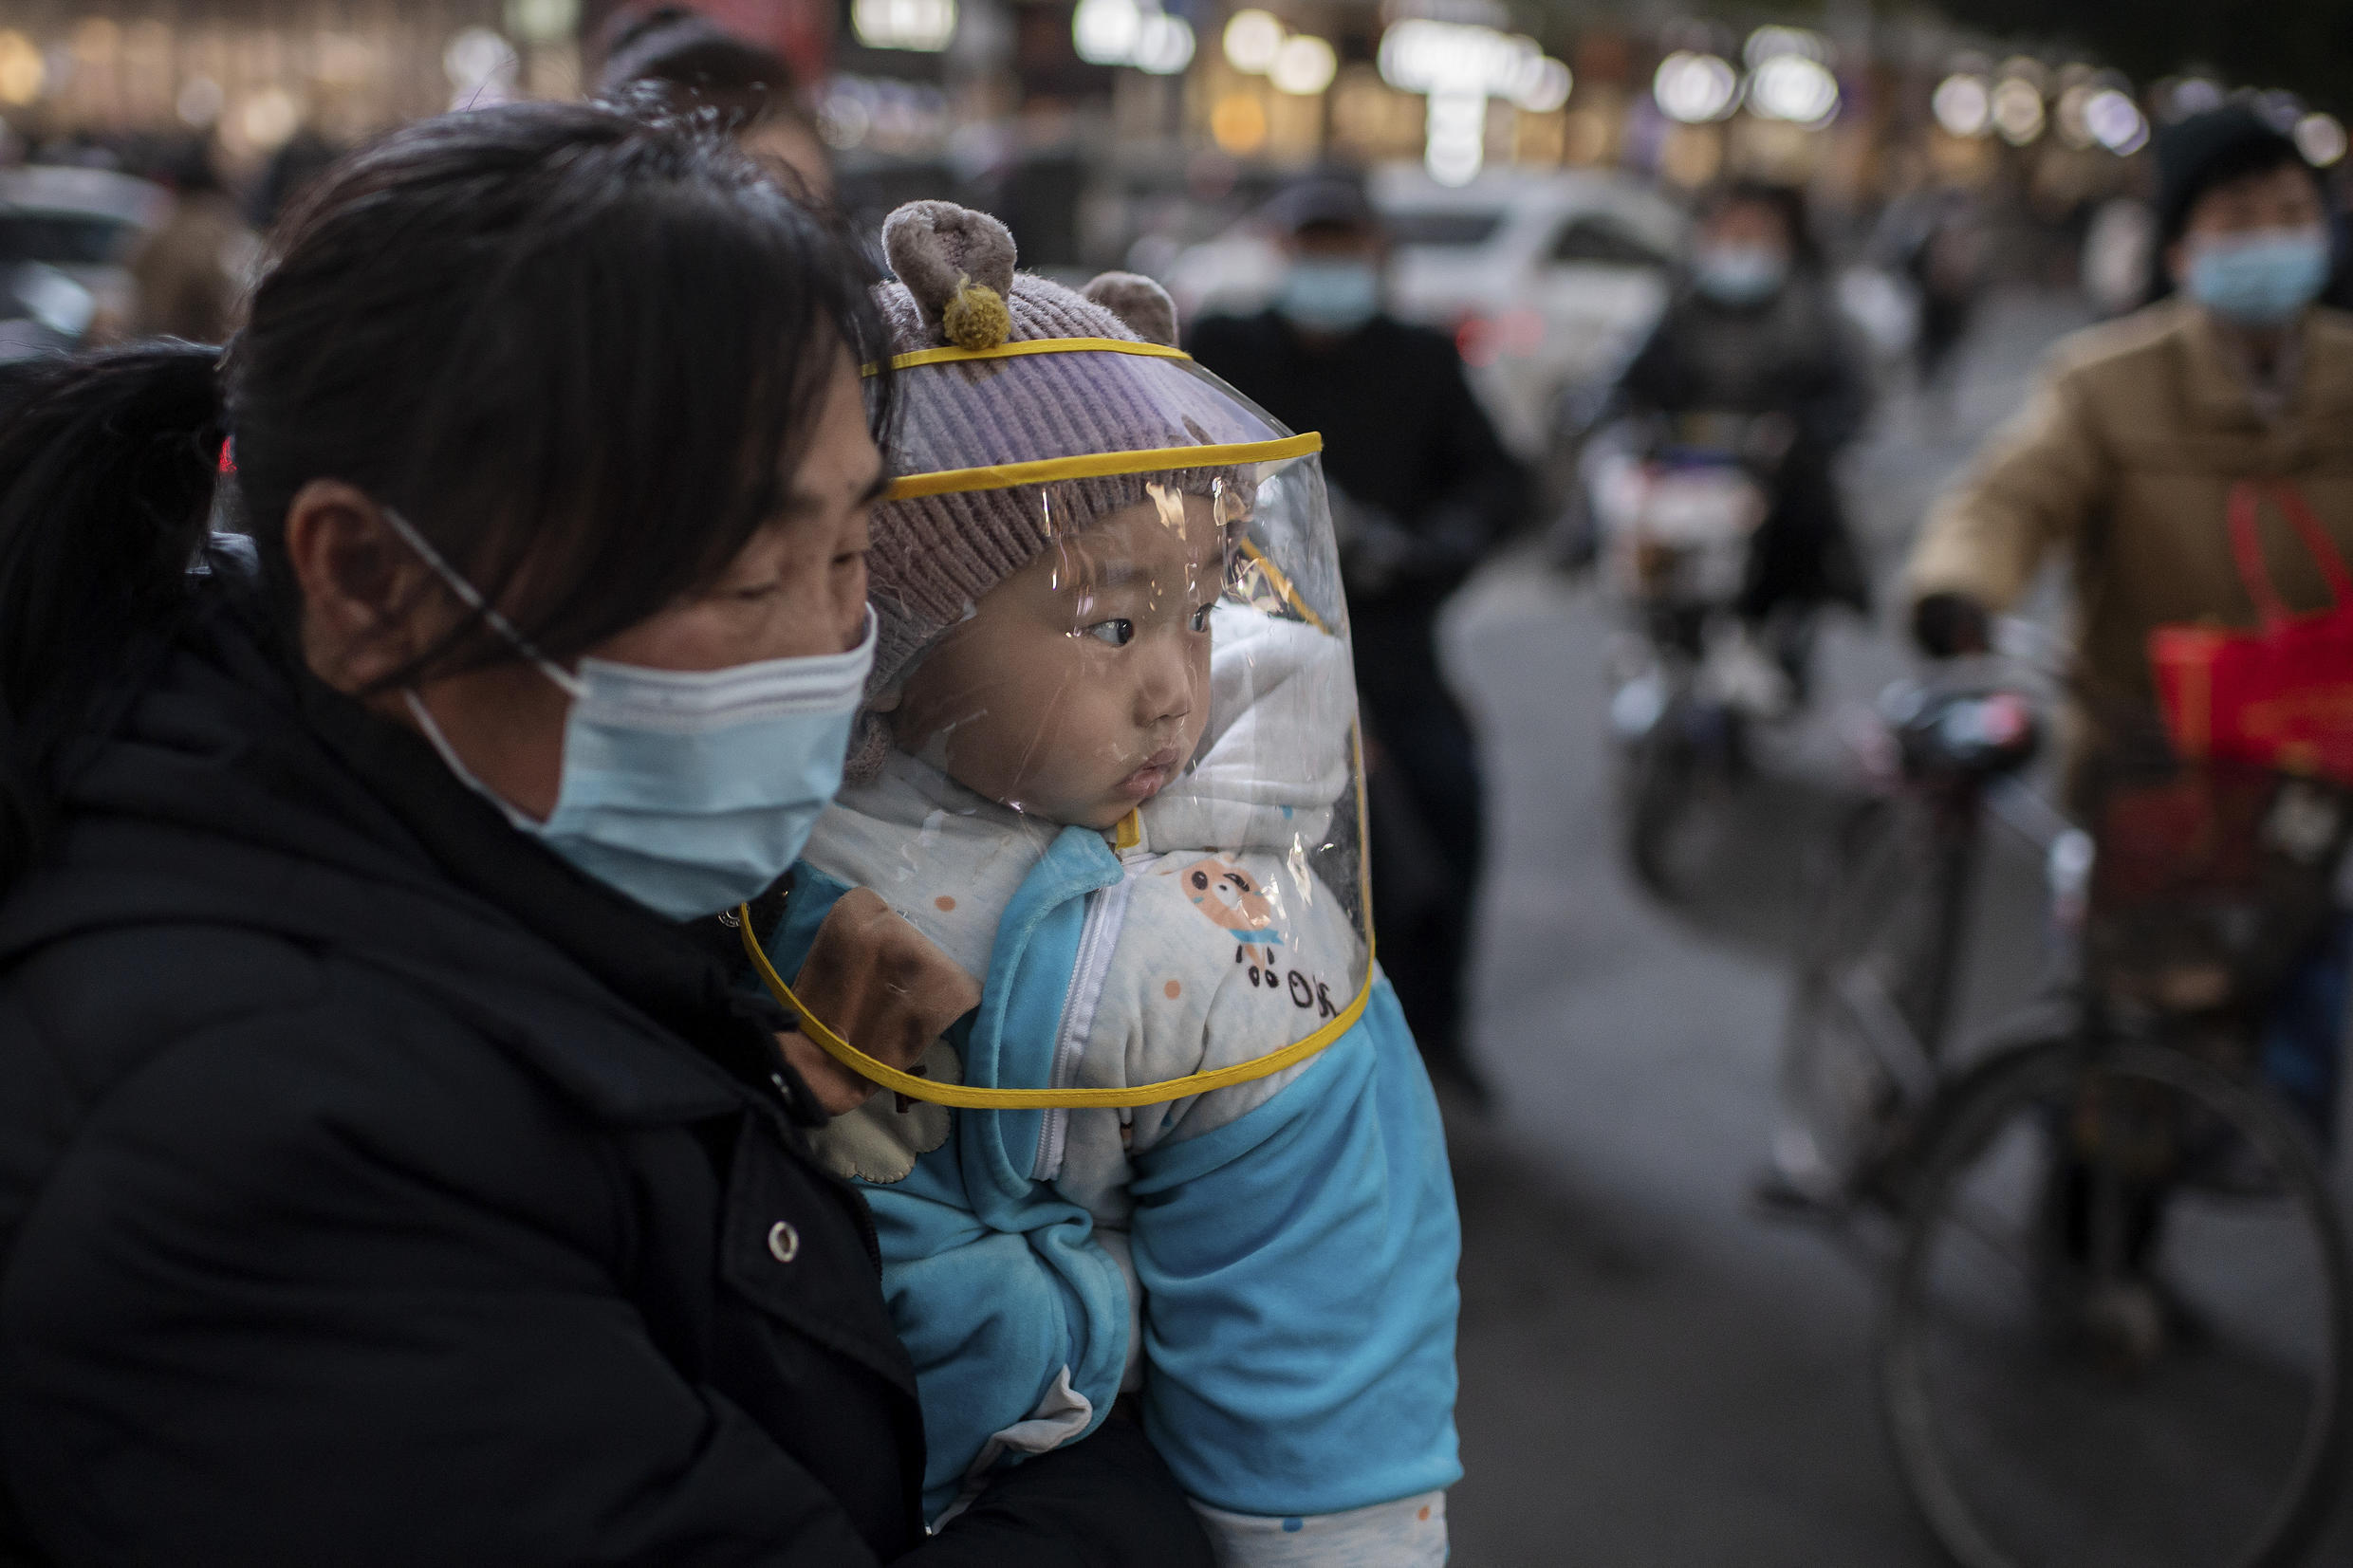 A woman and her child near a shopping mall in Wuhan, China, on January 13, 2021.